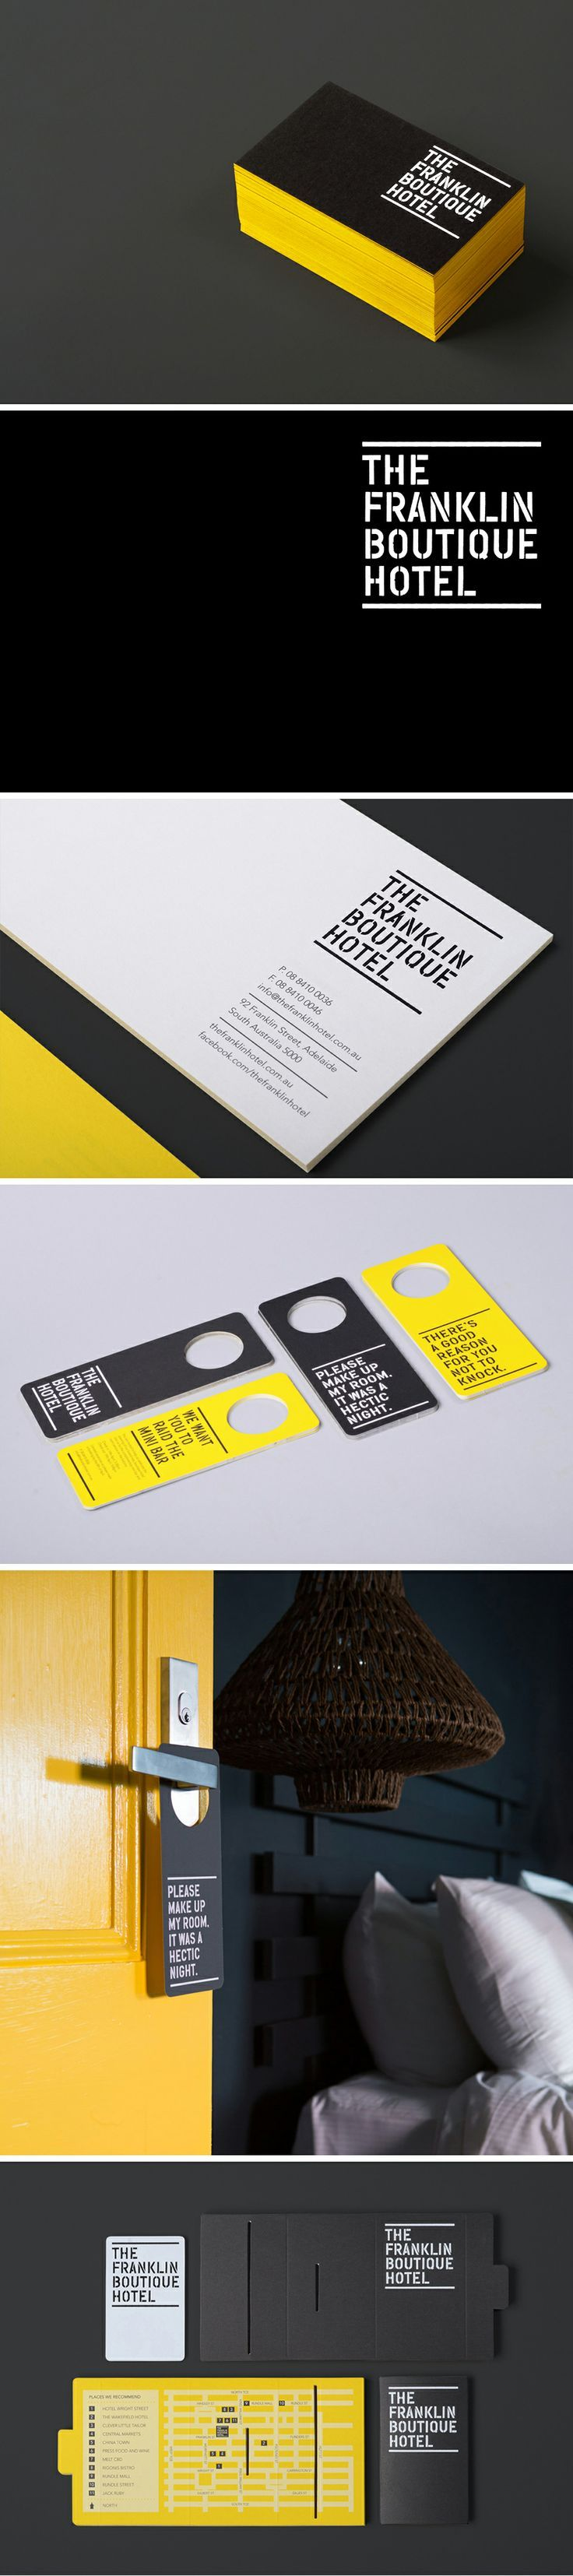 180 besten Graphic Design Inspiration Bilder auf Pinterest